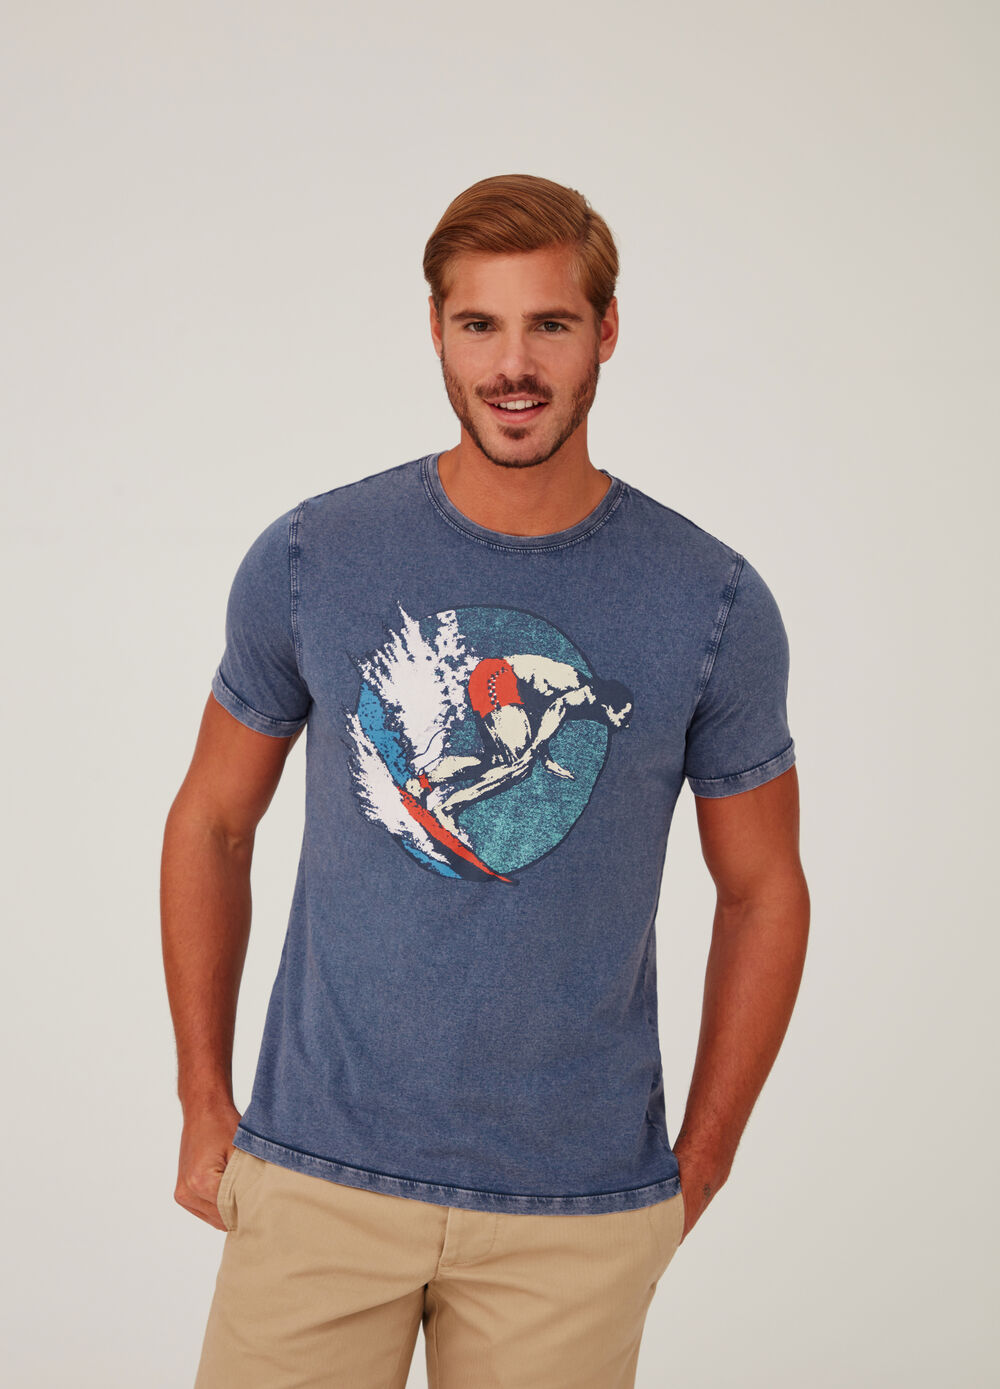 T-shirt jersey effetto vintage con stampa